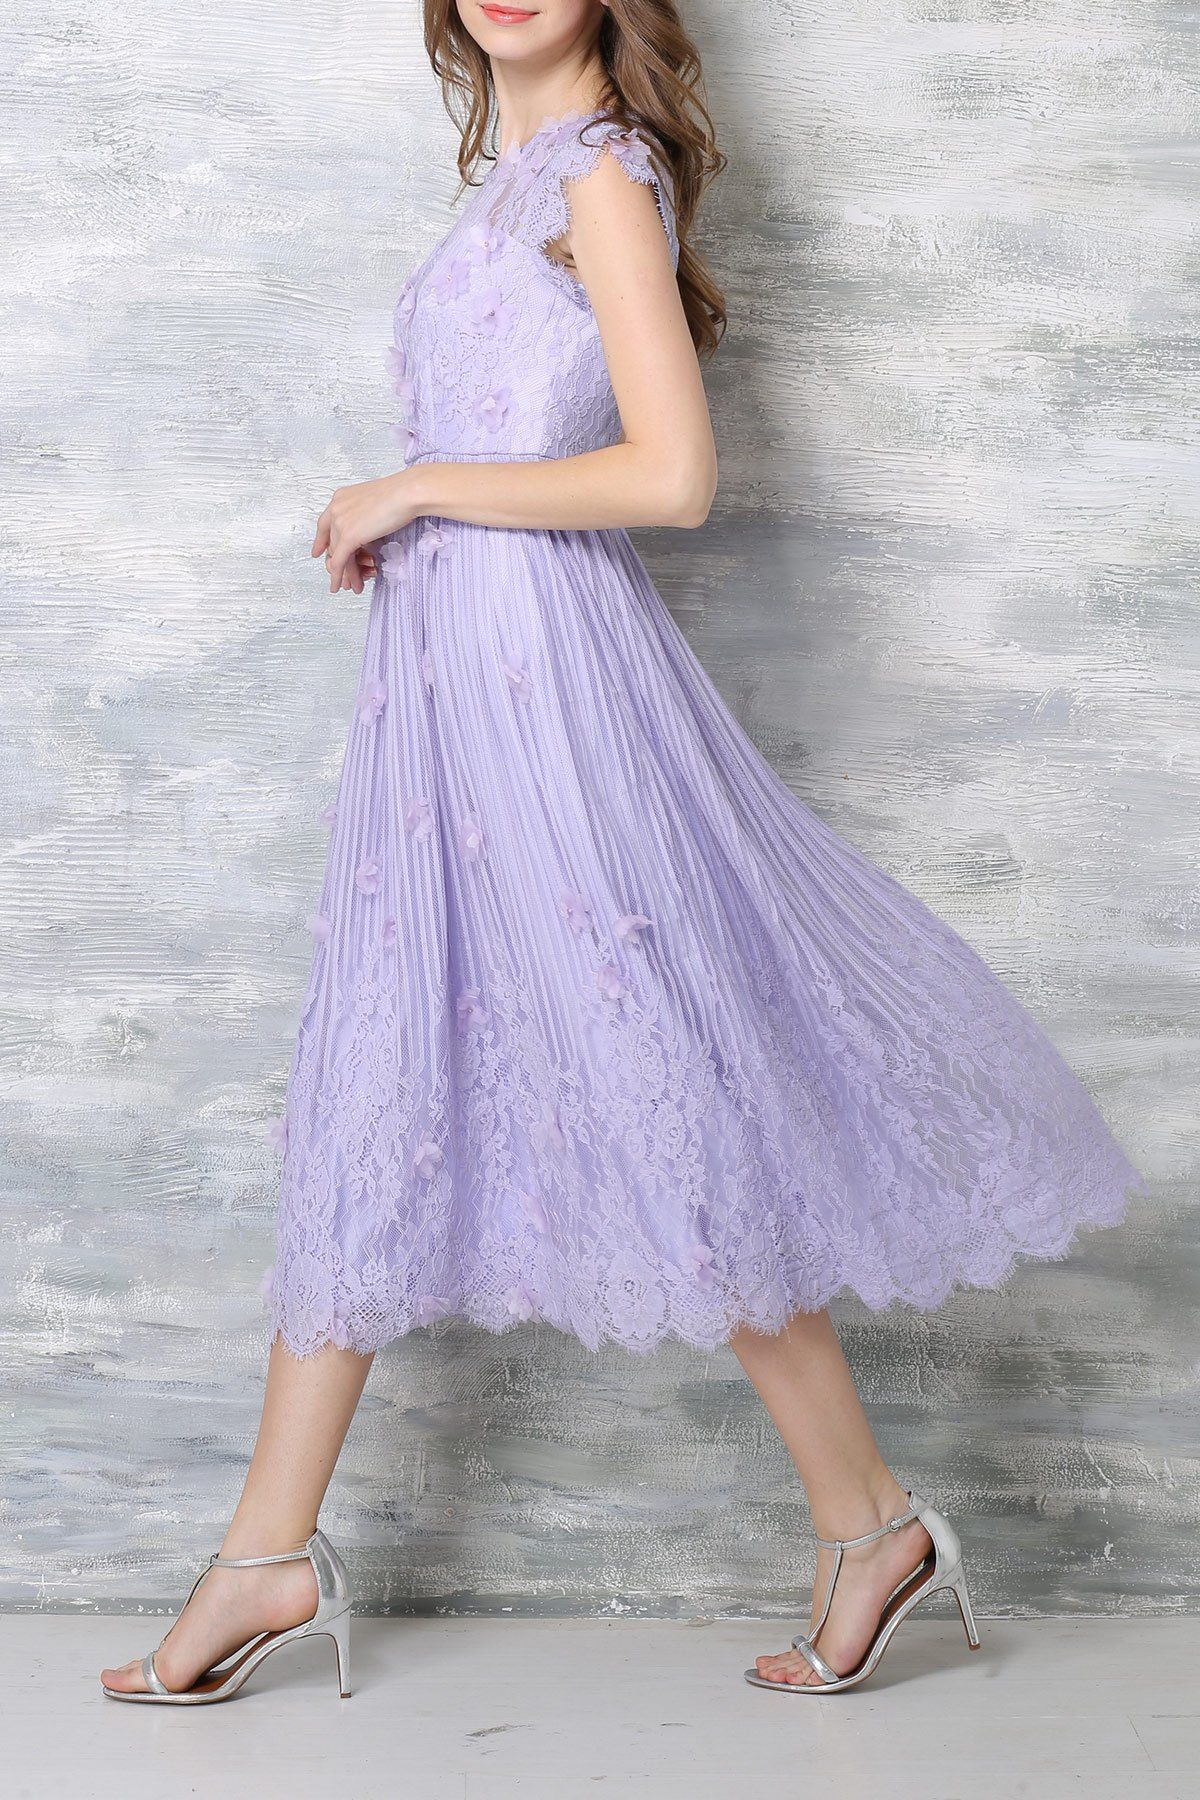 Lace Stereo Floral Tea Length Dress == | Wedding Bridemaids ...